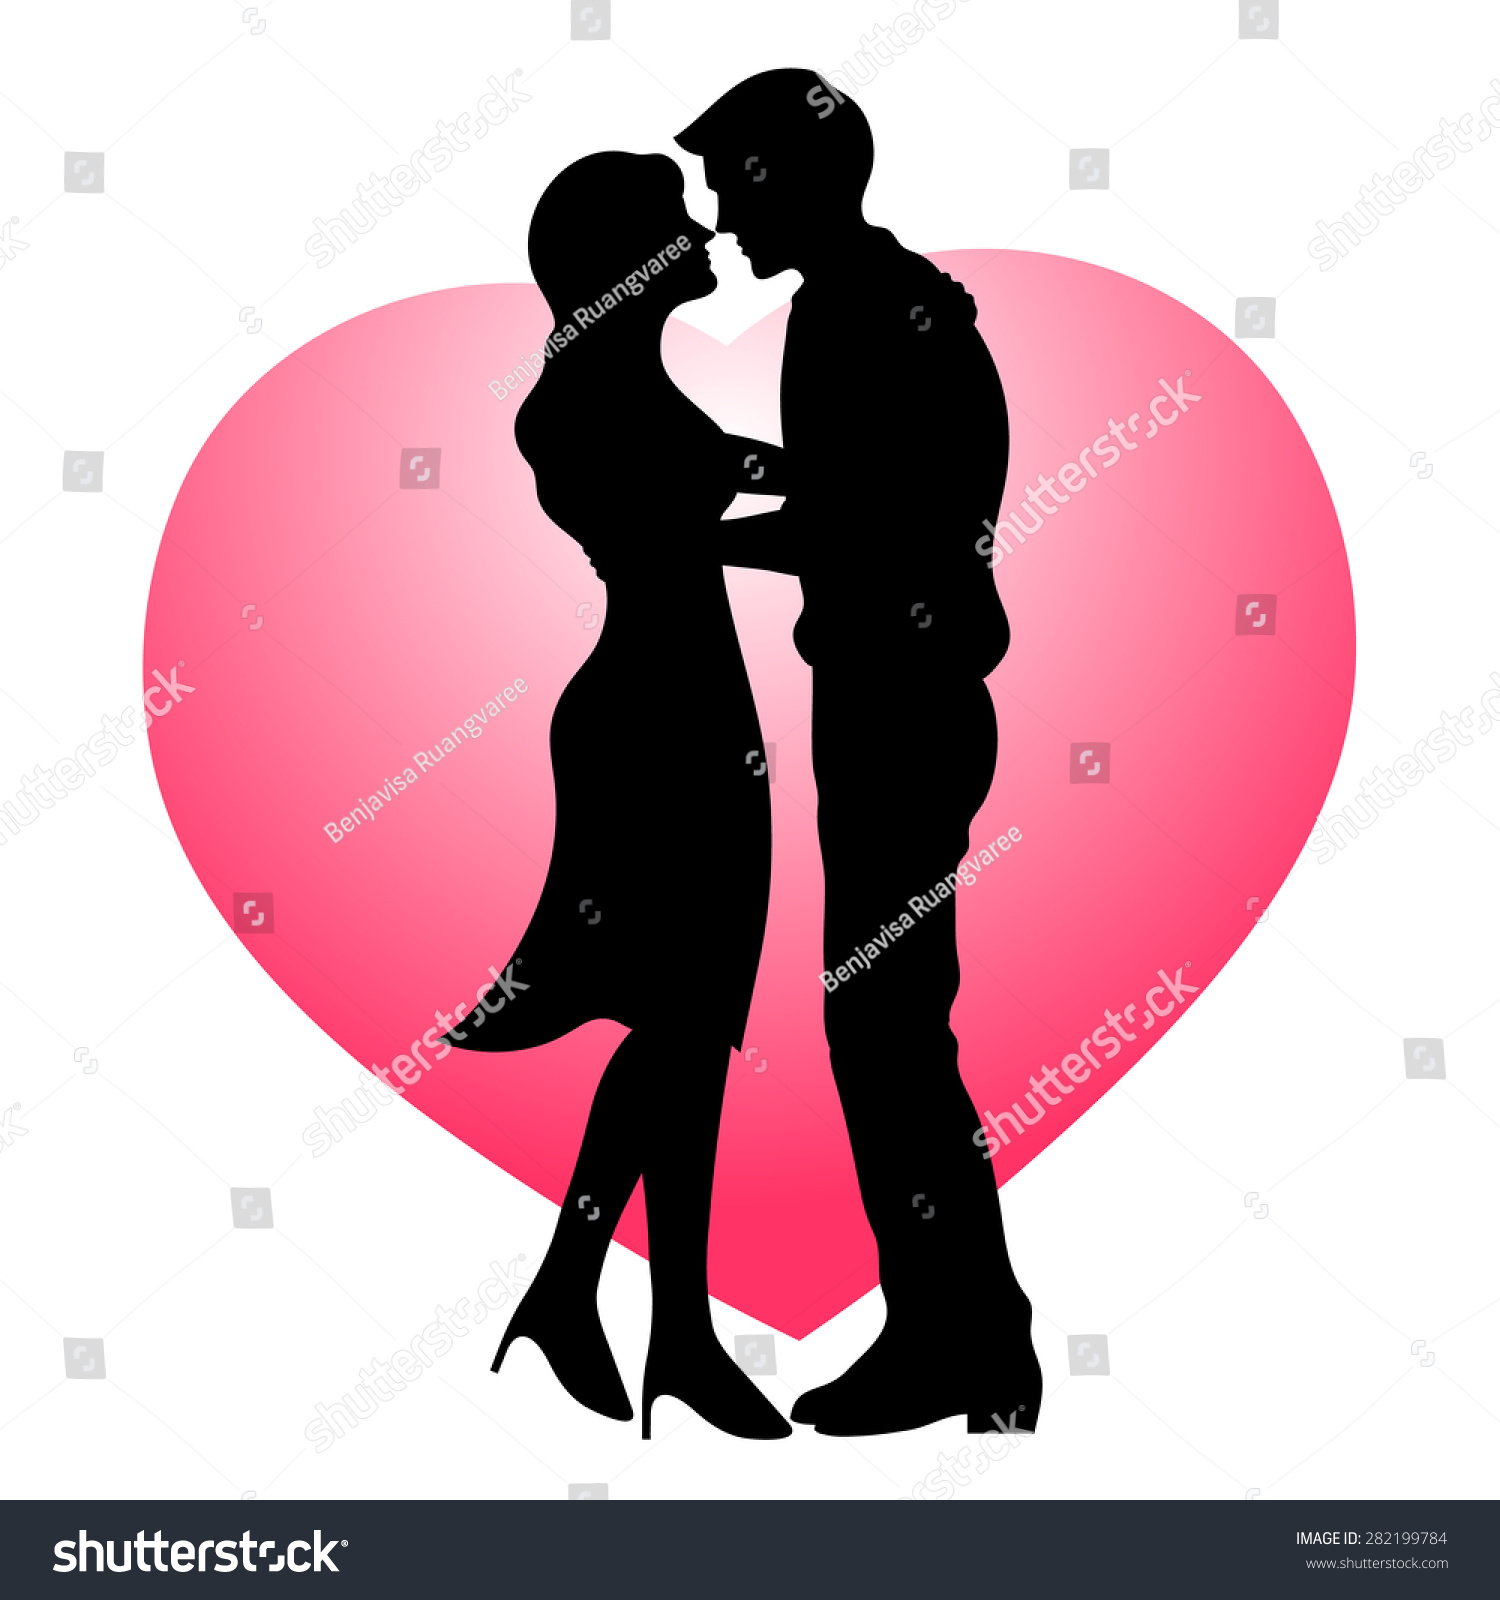 valentines day heart couple - photo #40